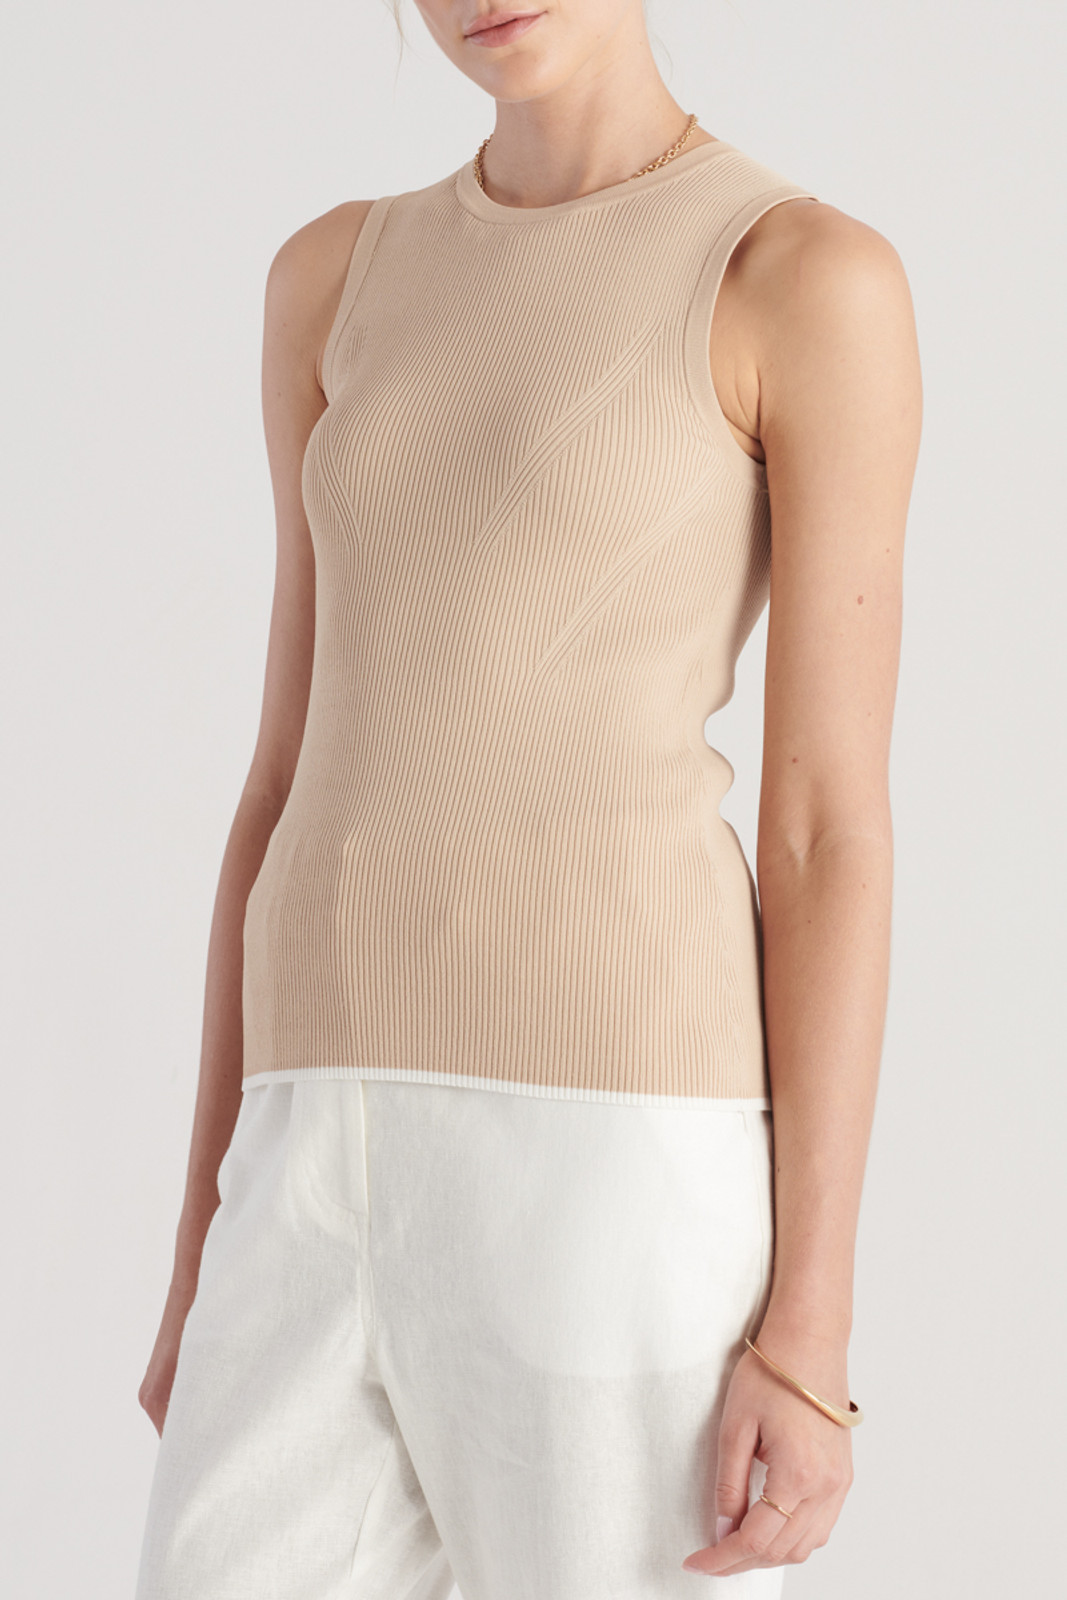 Elka Collective WomensTone Knit Top Sand  5